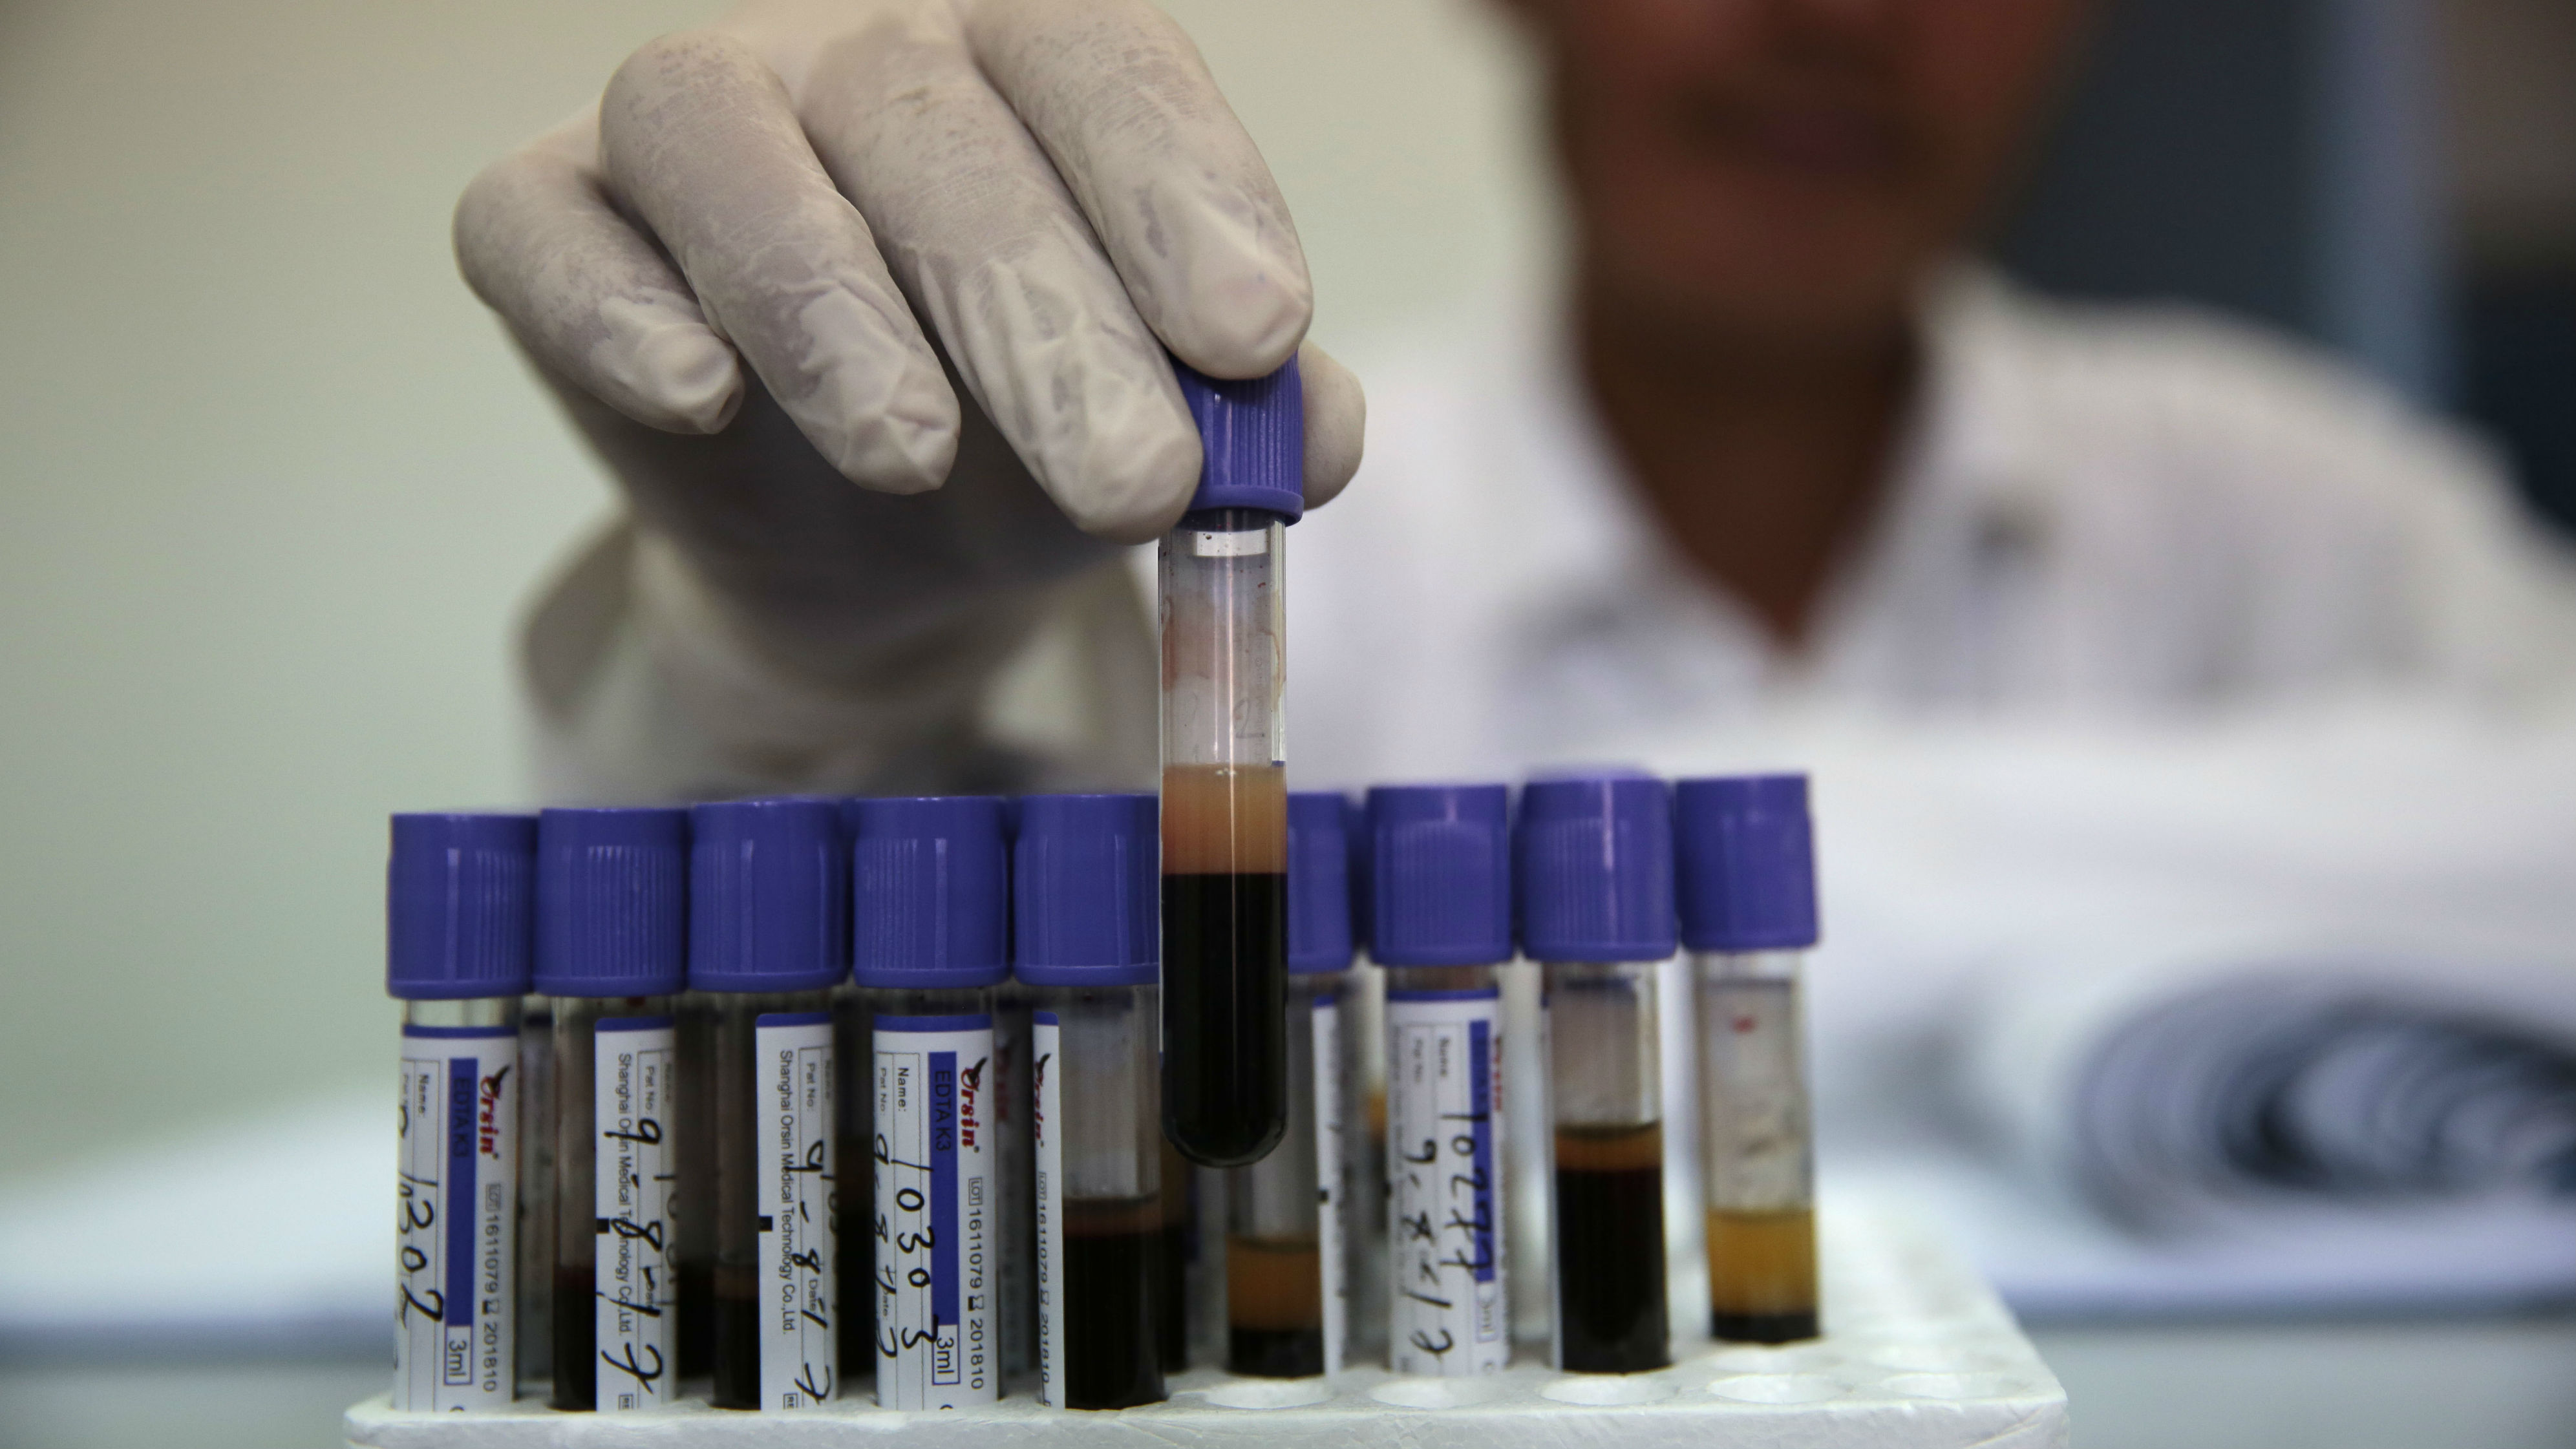 A worker sorts blood samples for testing at a laboratory at the National Blood Transfusion and Research Centre, in Sanaa, Yemen, Wednesday, Aug. 9, 2017.